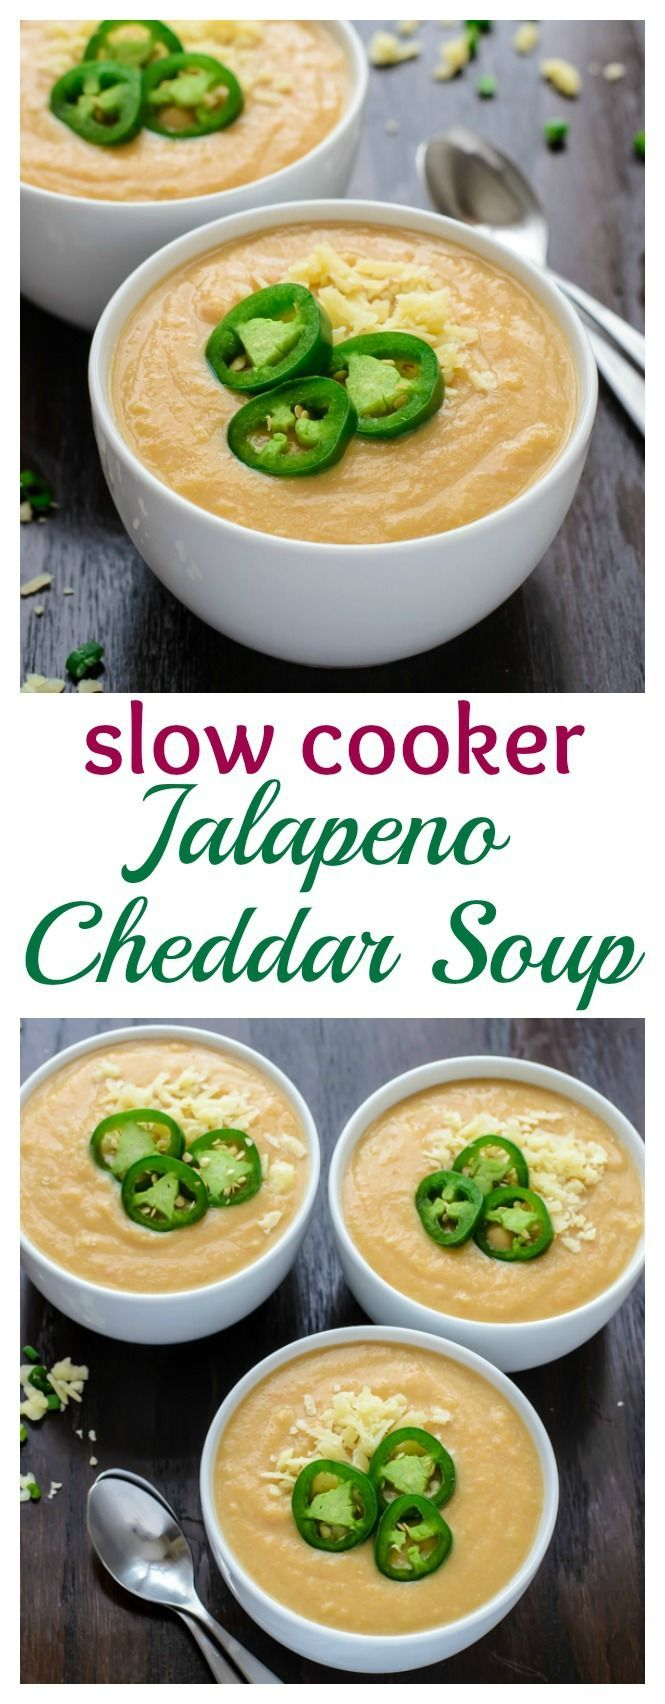 Slow Cooker Jalapeno Cheddar Cheese Soup. A thick and creamy cheesy potato soup with a kick!